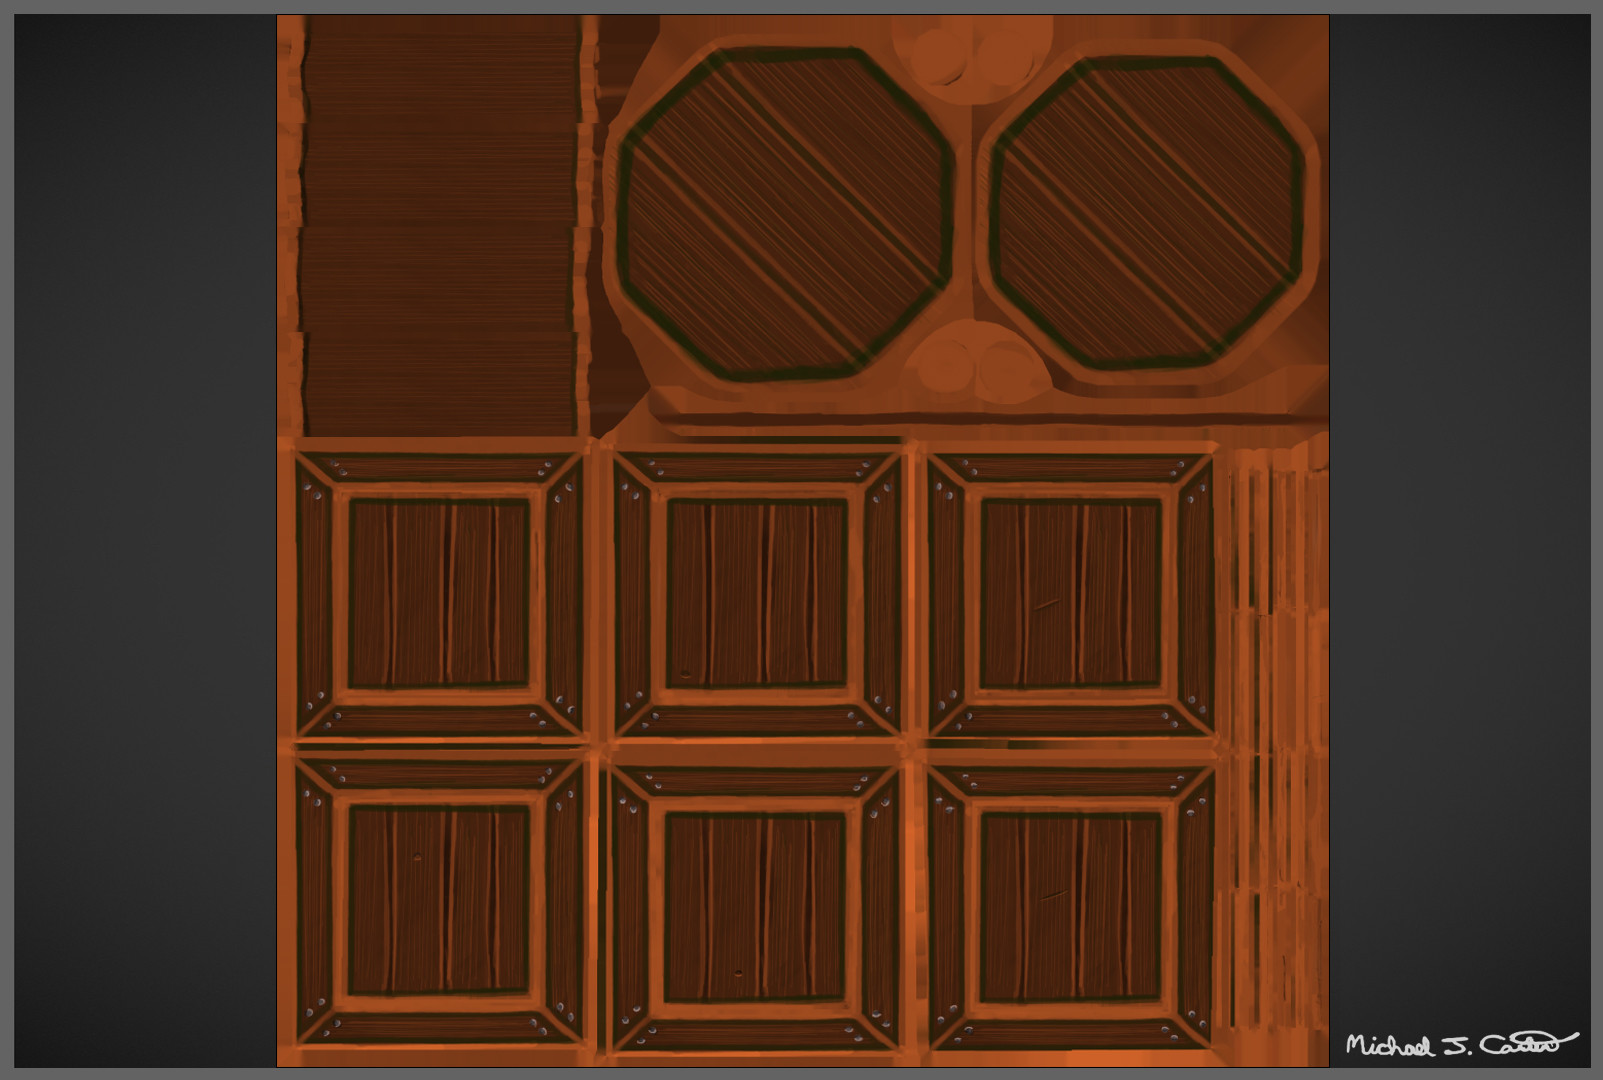 Michael jake carter mcarter wood assets texture maps image